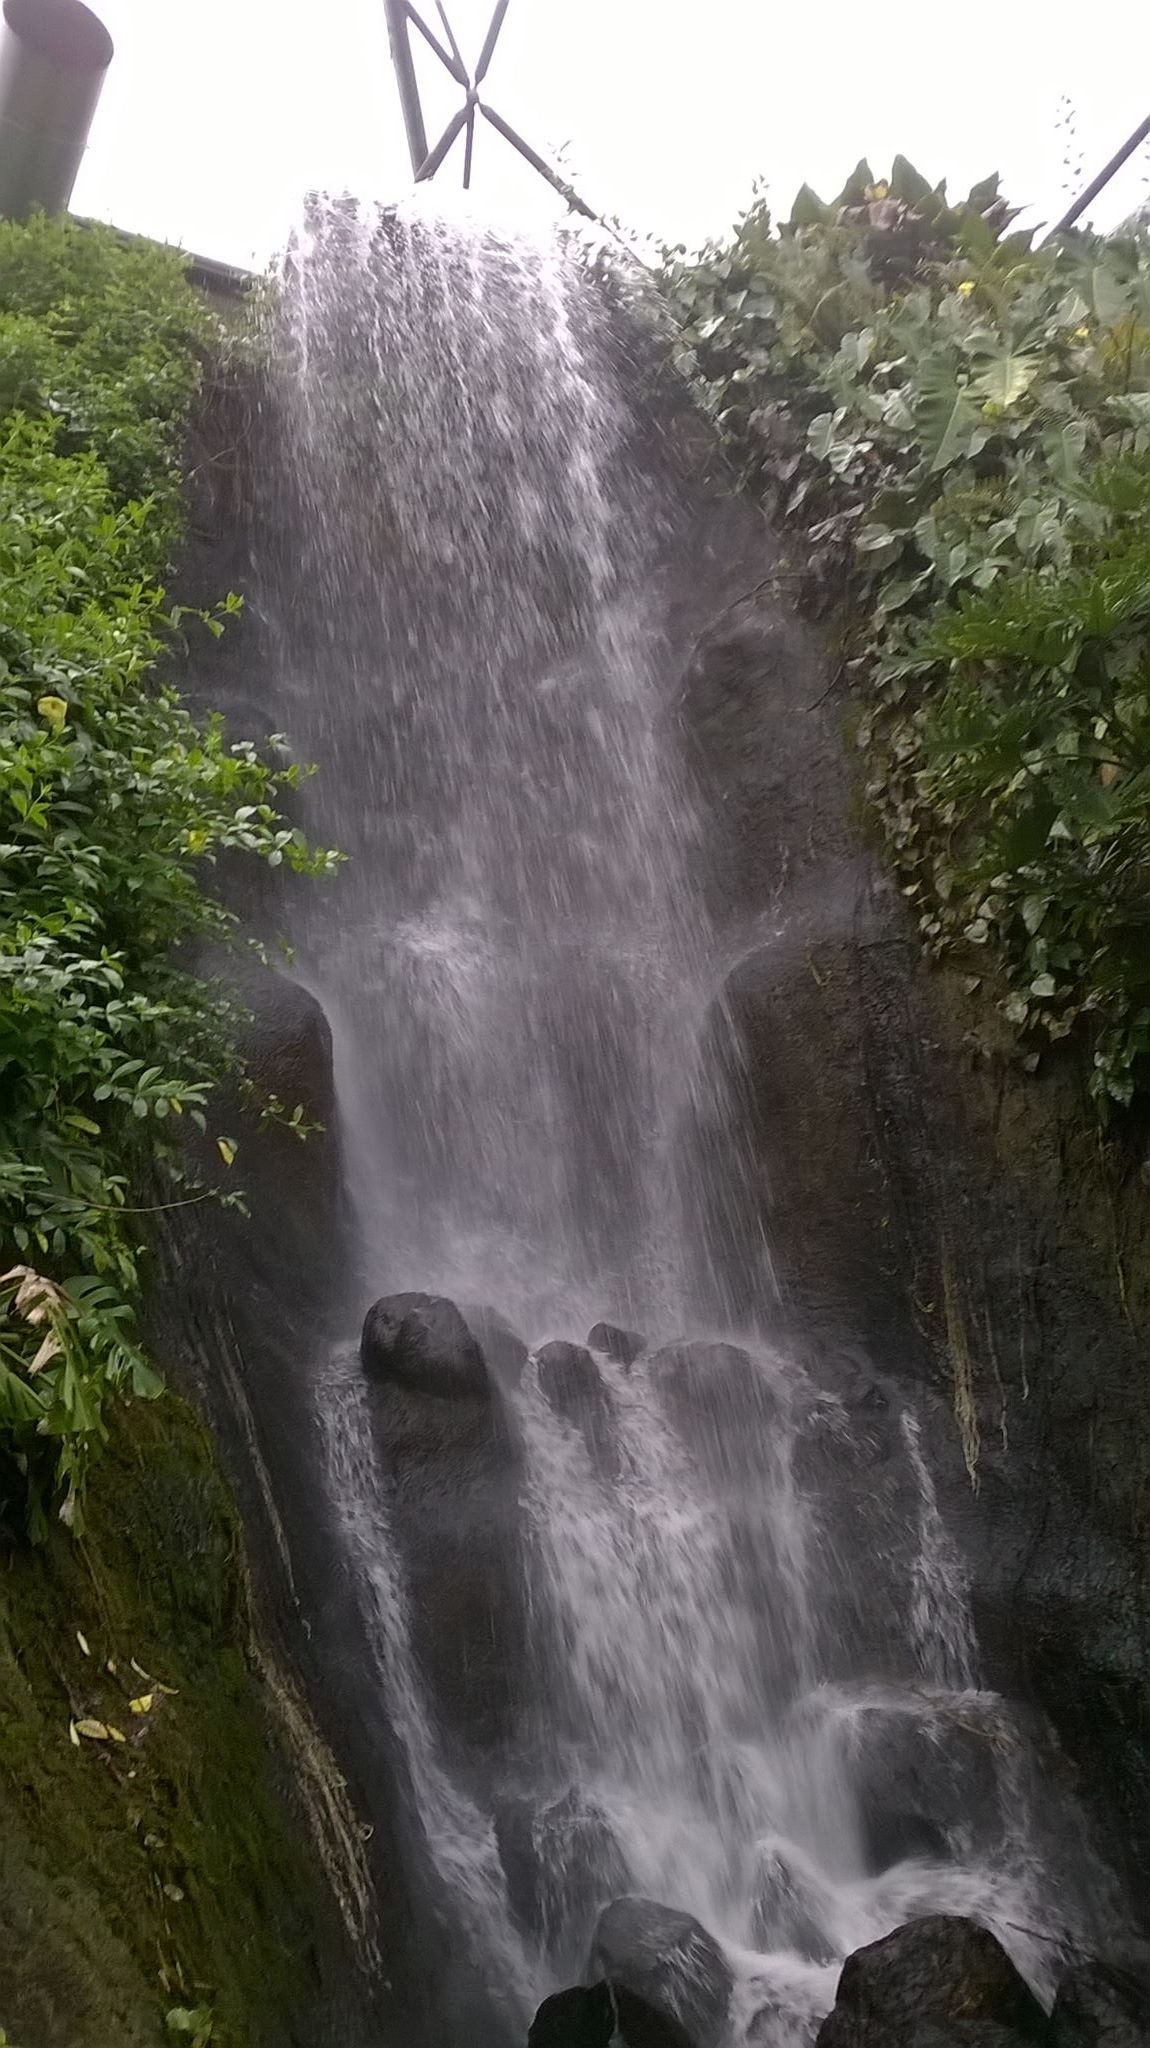 A photo of the waterfall inside the rain forest biome at The Eden Project.